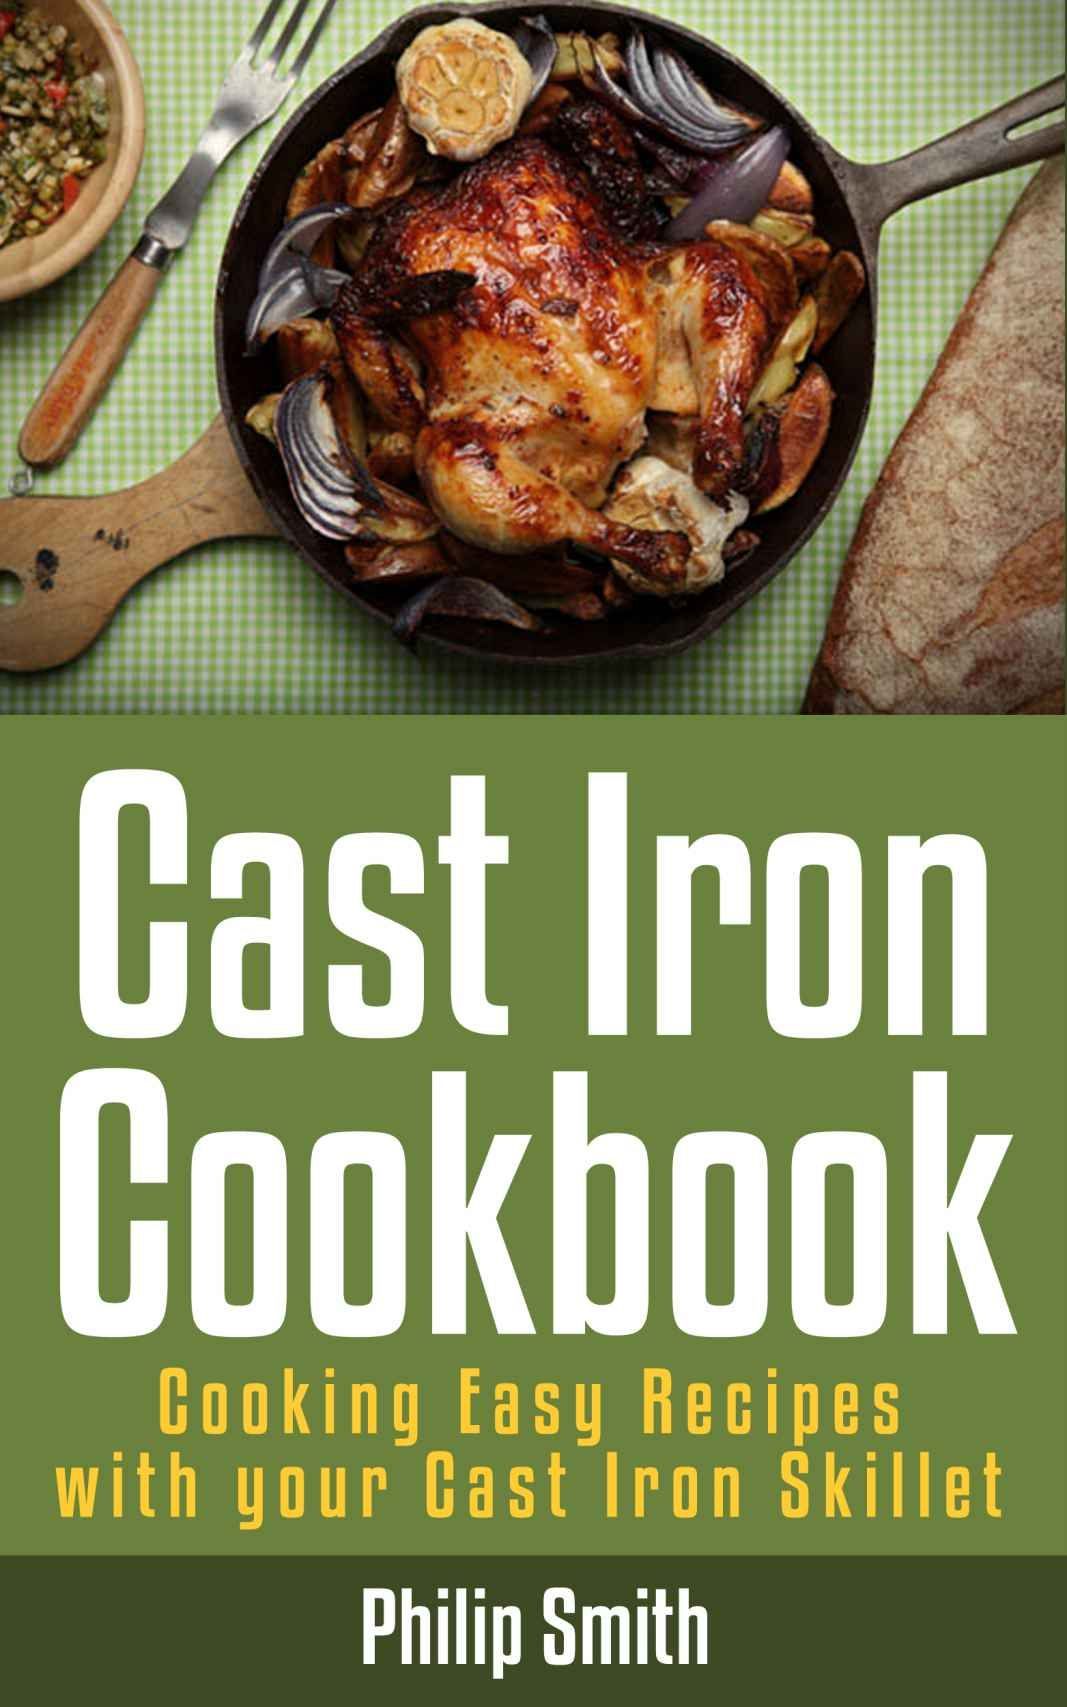 Cast Iron Cookbook Cooking Easy Recipes With Your Cast Iron